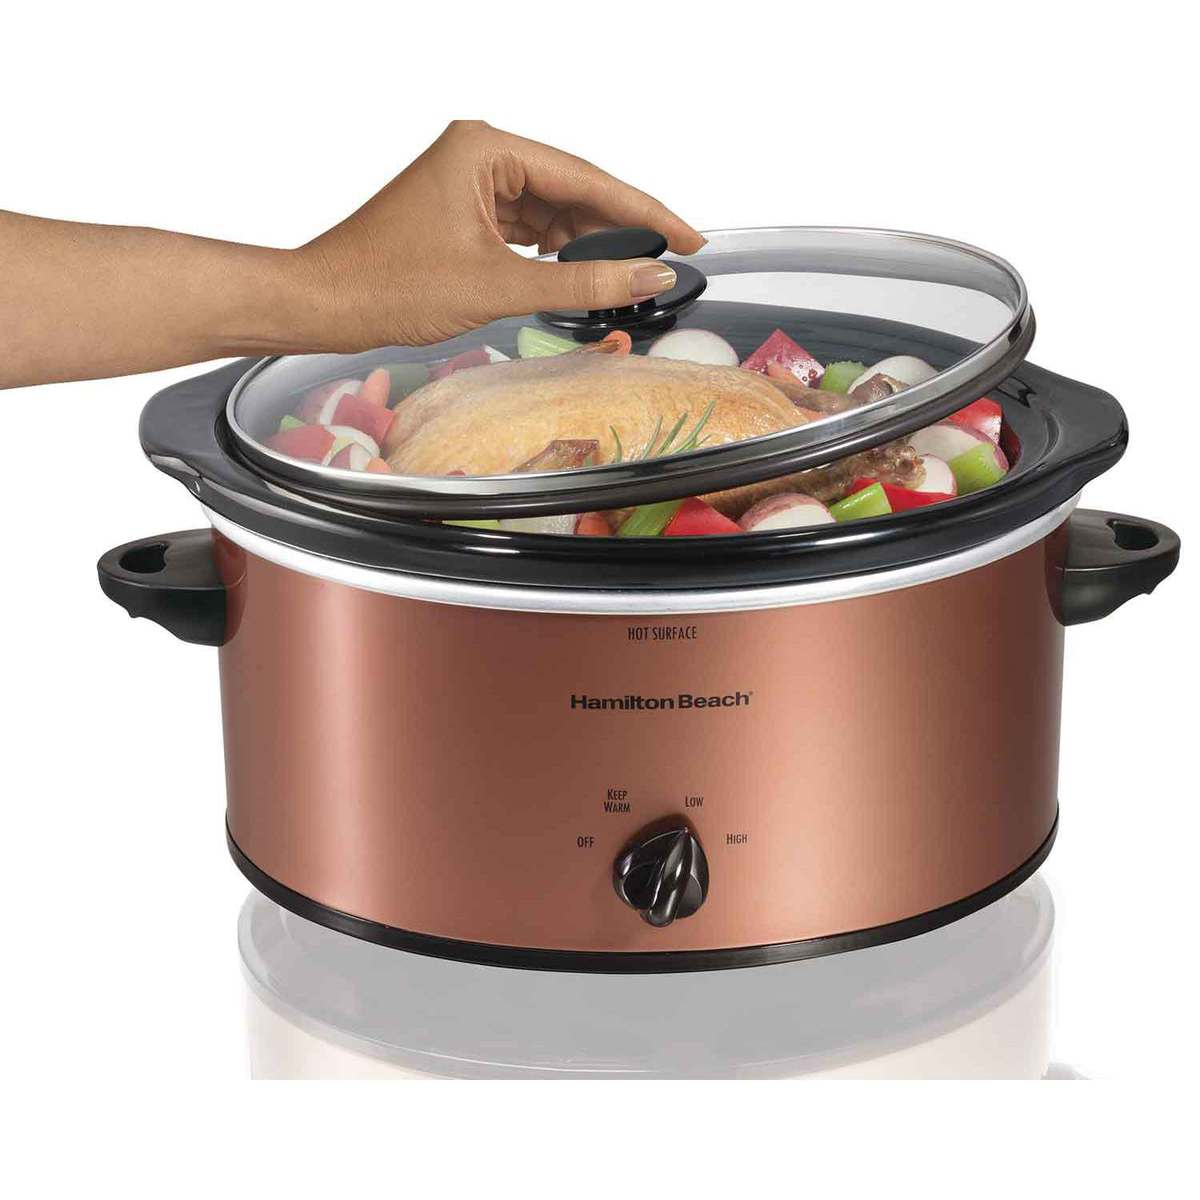 5 Quart Portable Slow Cooker (33350)